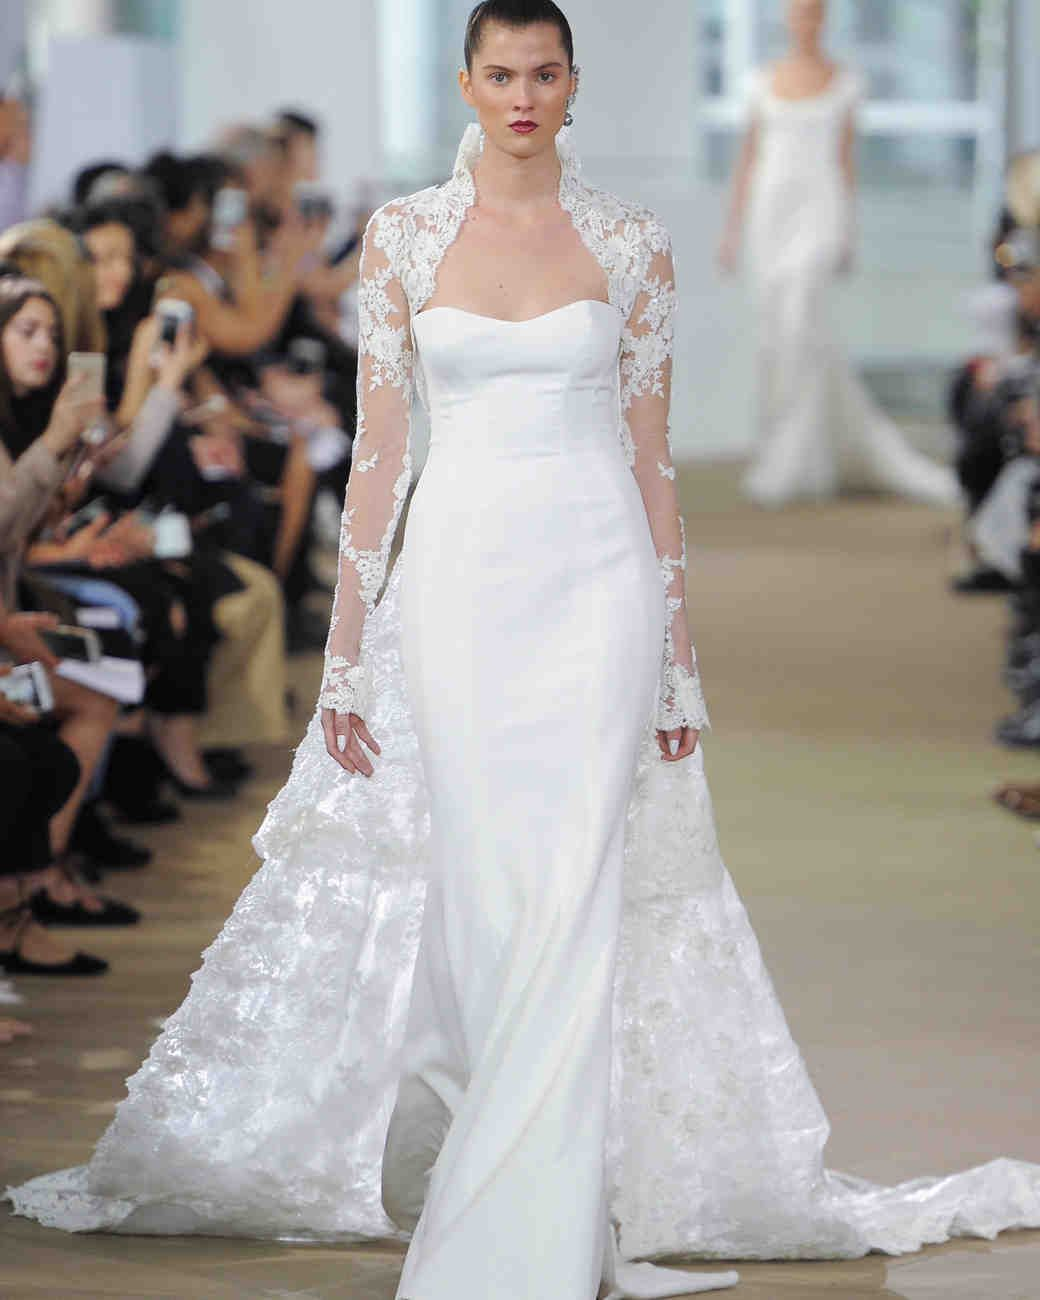 Wedding dress with removable train  Ines Di Santo Spring  Wedding Dress Collection  Martha Stewart